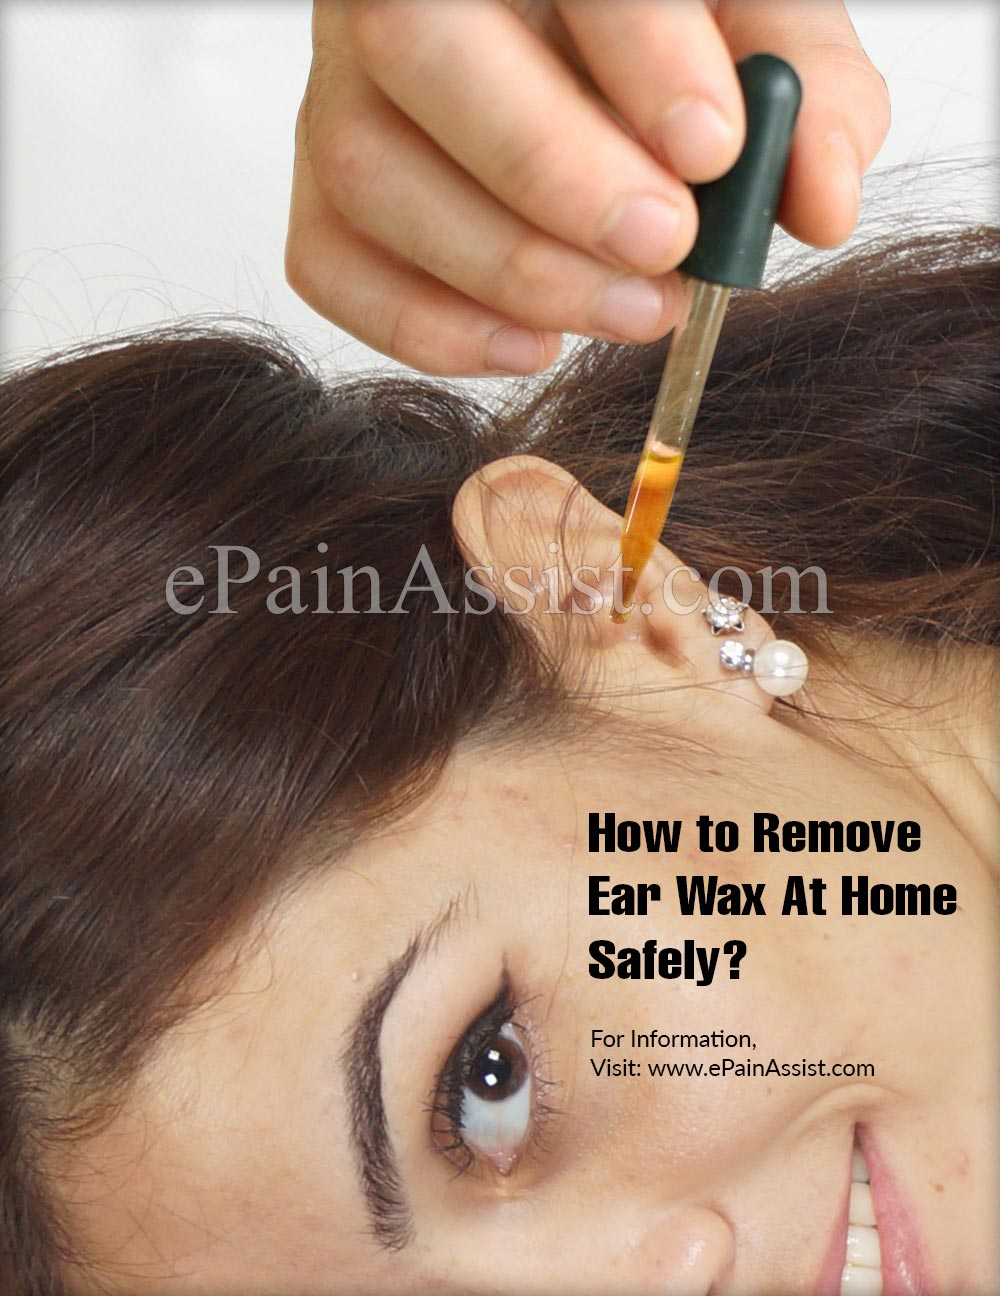 How to Remove Ear Wax At Home Safely?